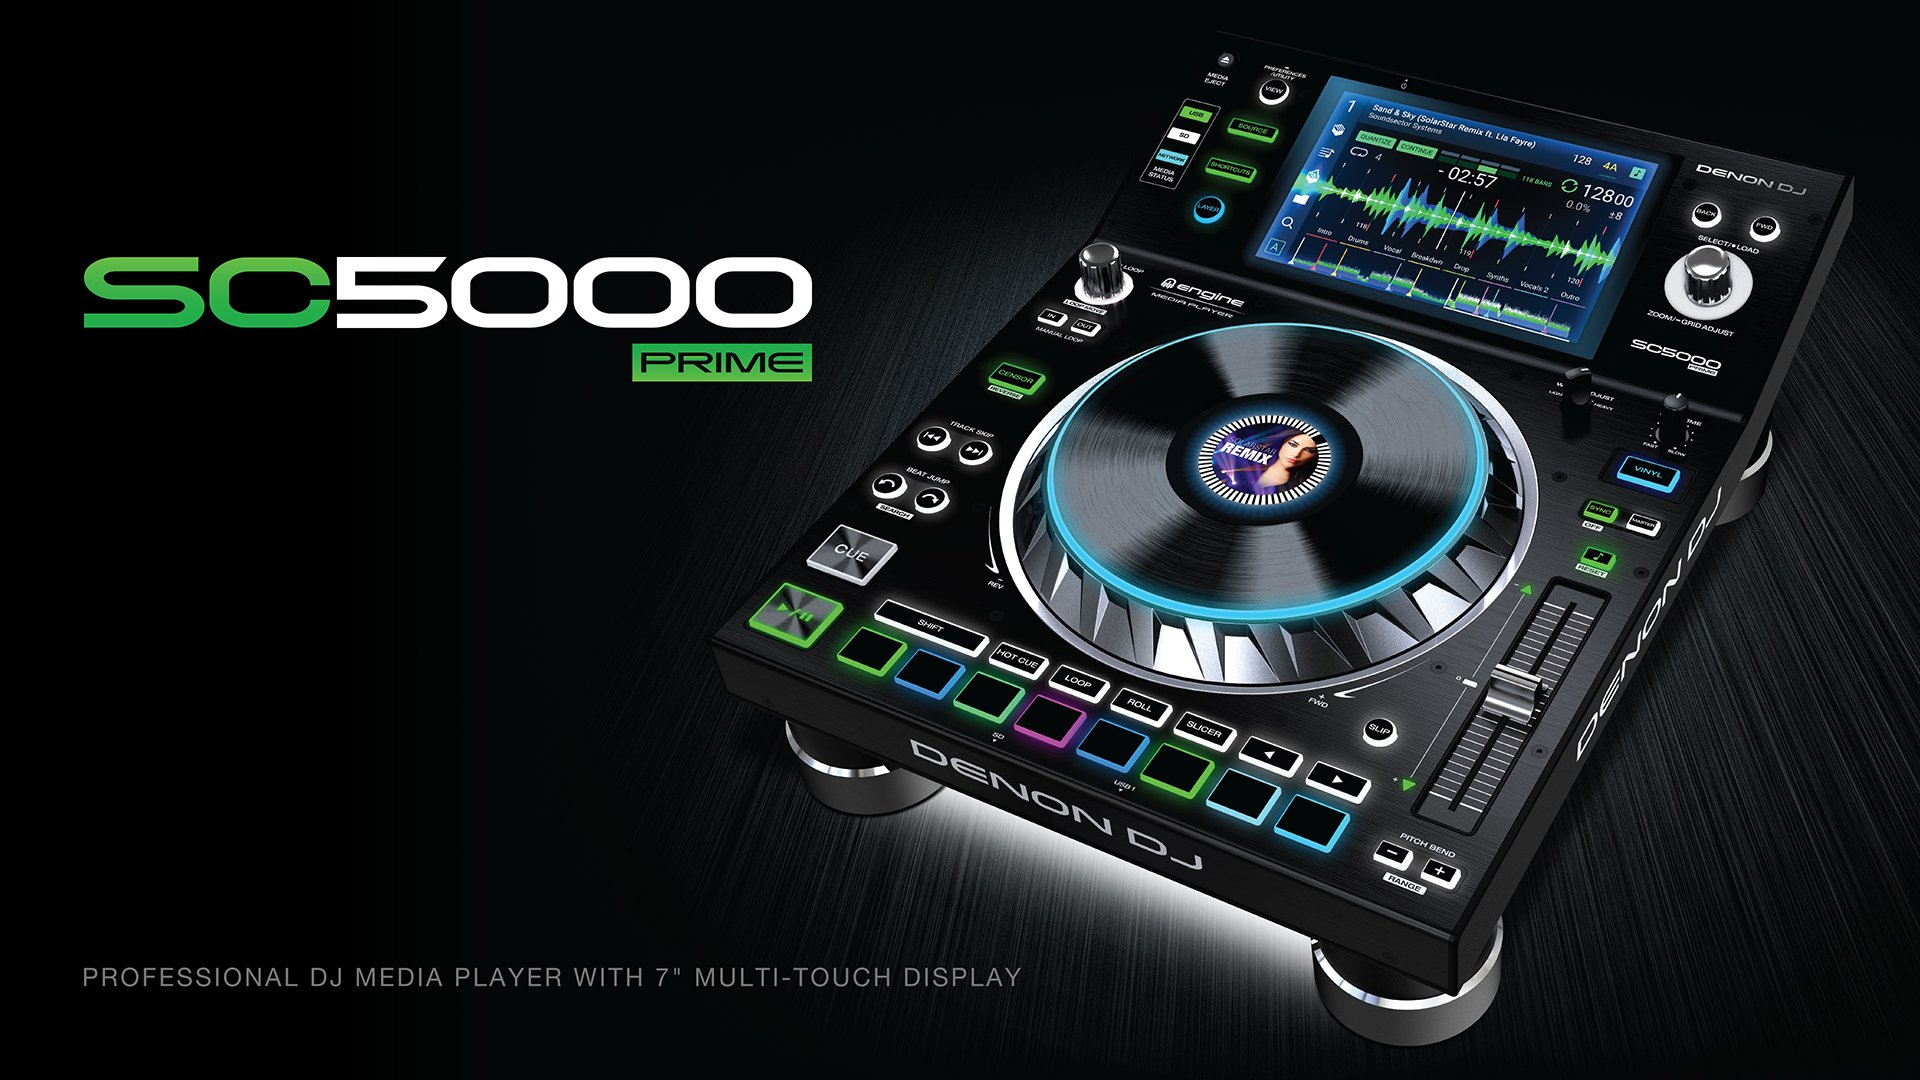 First Look At The Denon Dj Sc5000 Prime Media Player